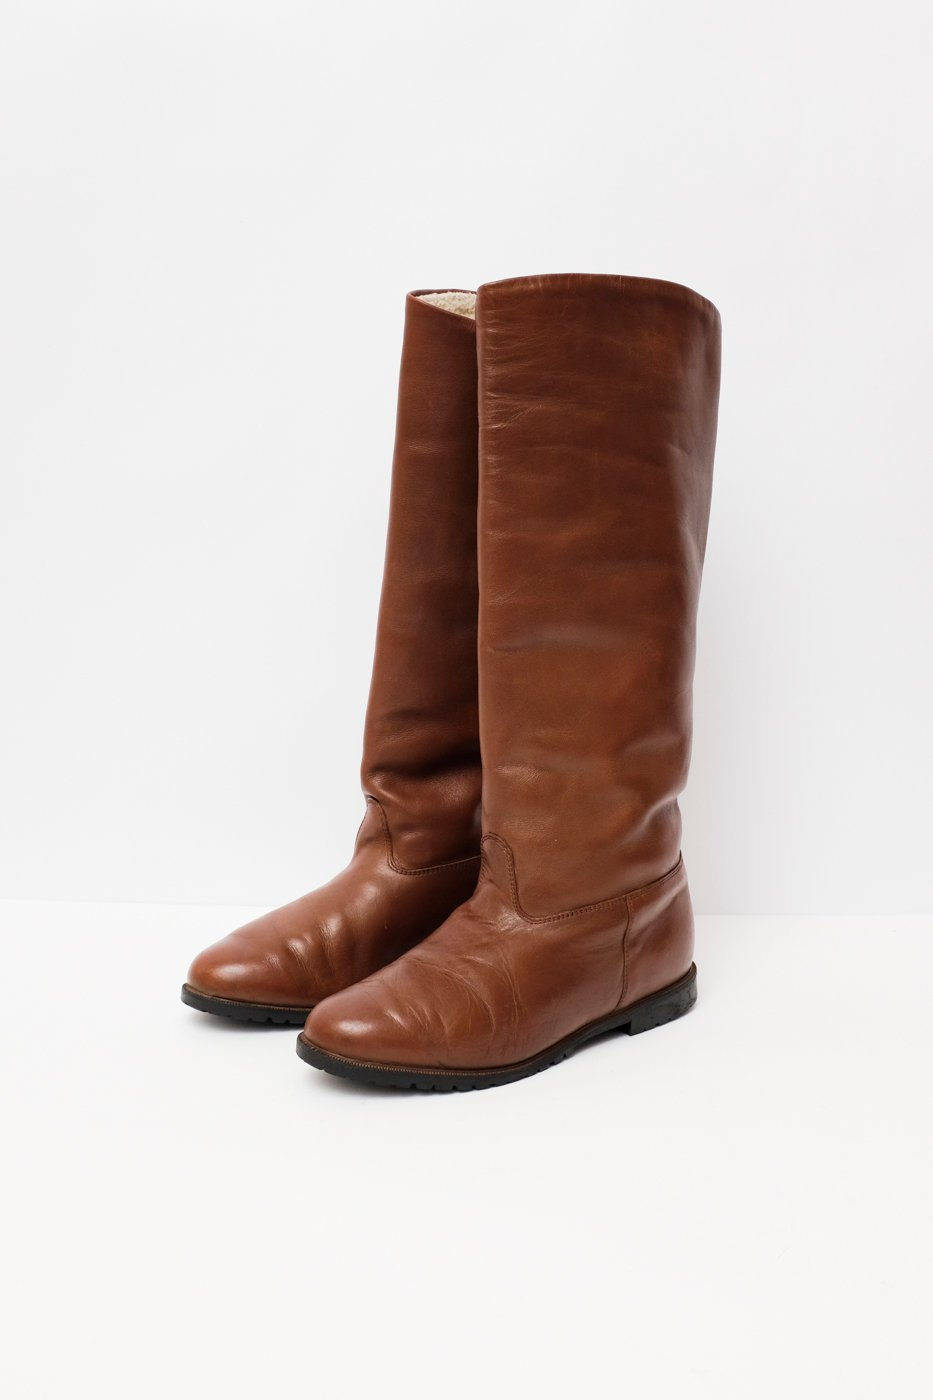 0268_WARM 39 COGNAC WINTER BOOTS